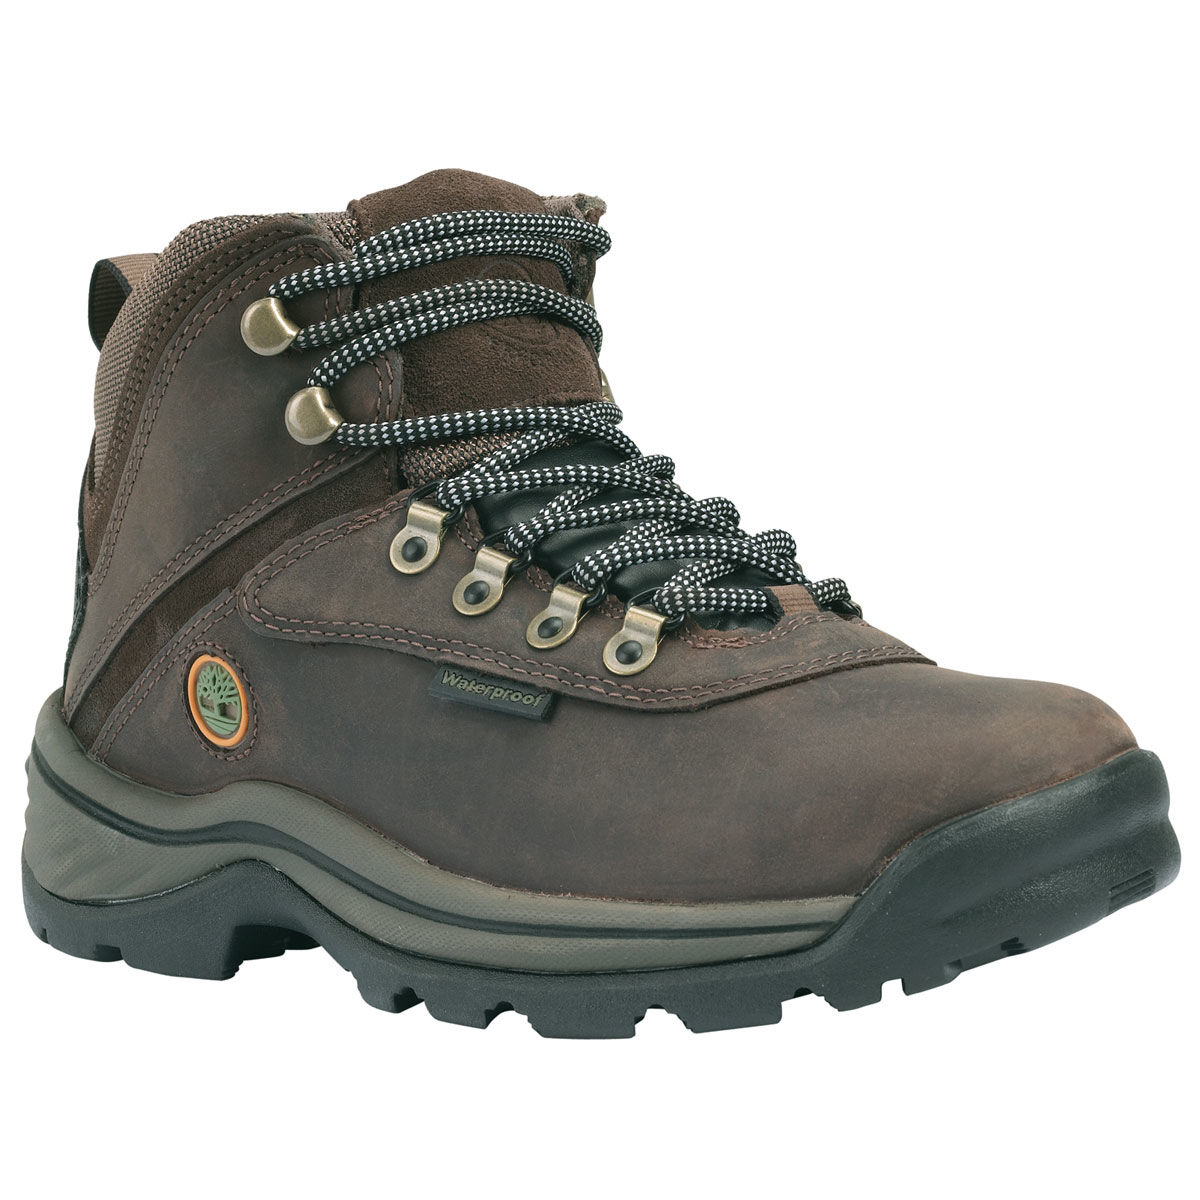 Timberland White Ledge Womens Hiker Boot